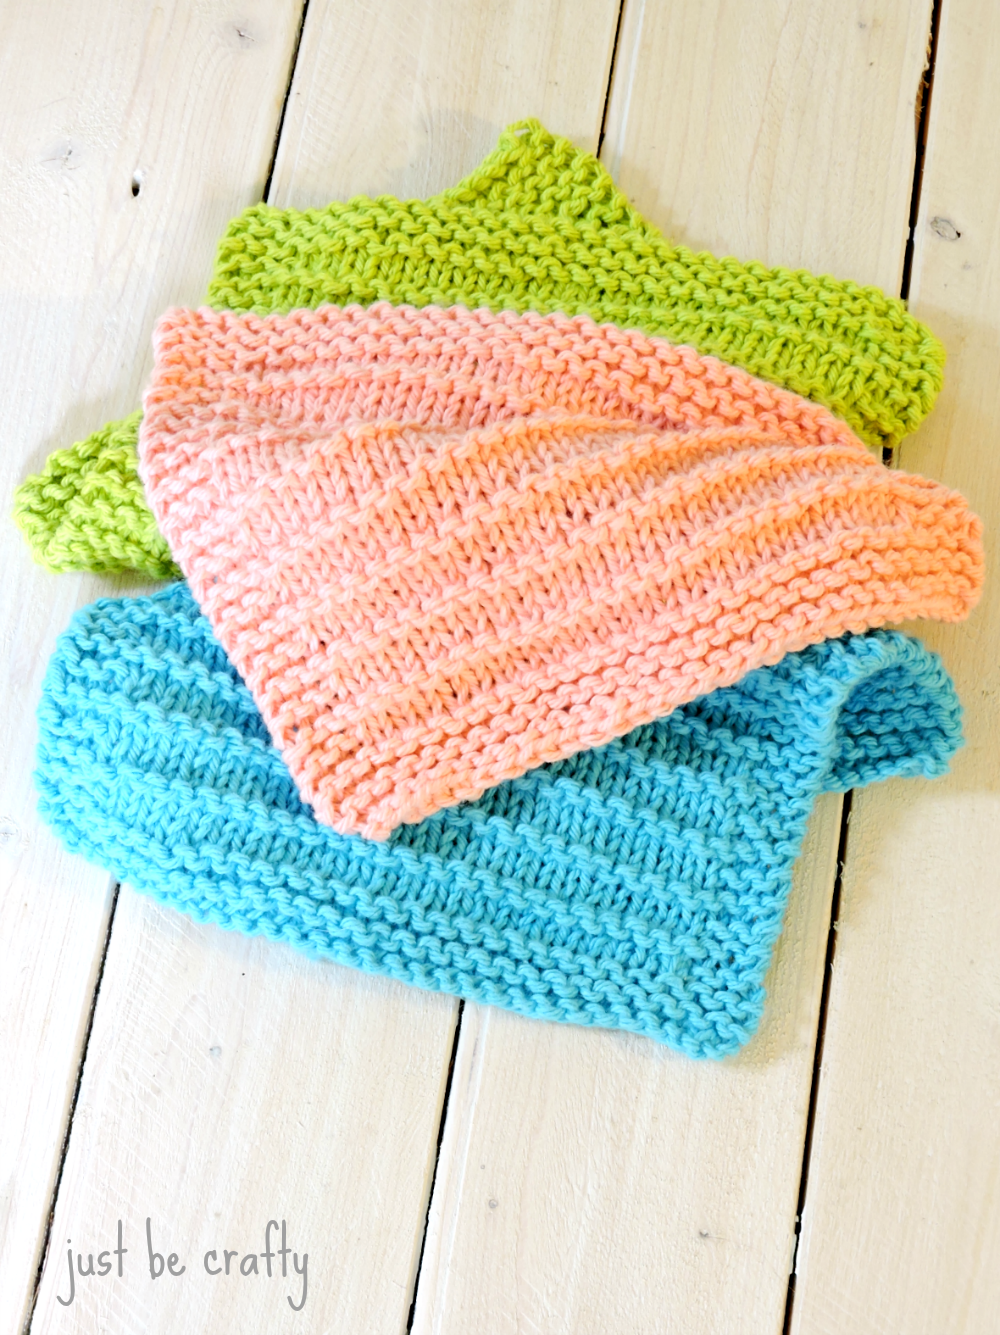 Dishcloth Knit Patterns Free : Farmhouse Kitchen Knitted Dishcloths - Just Be Crafty